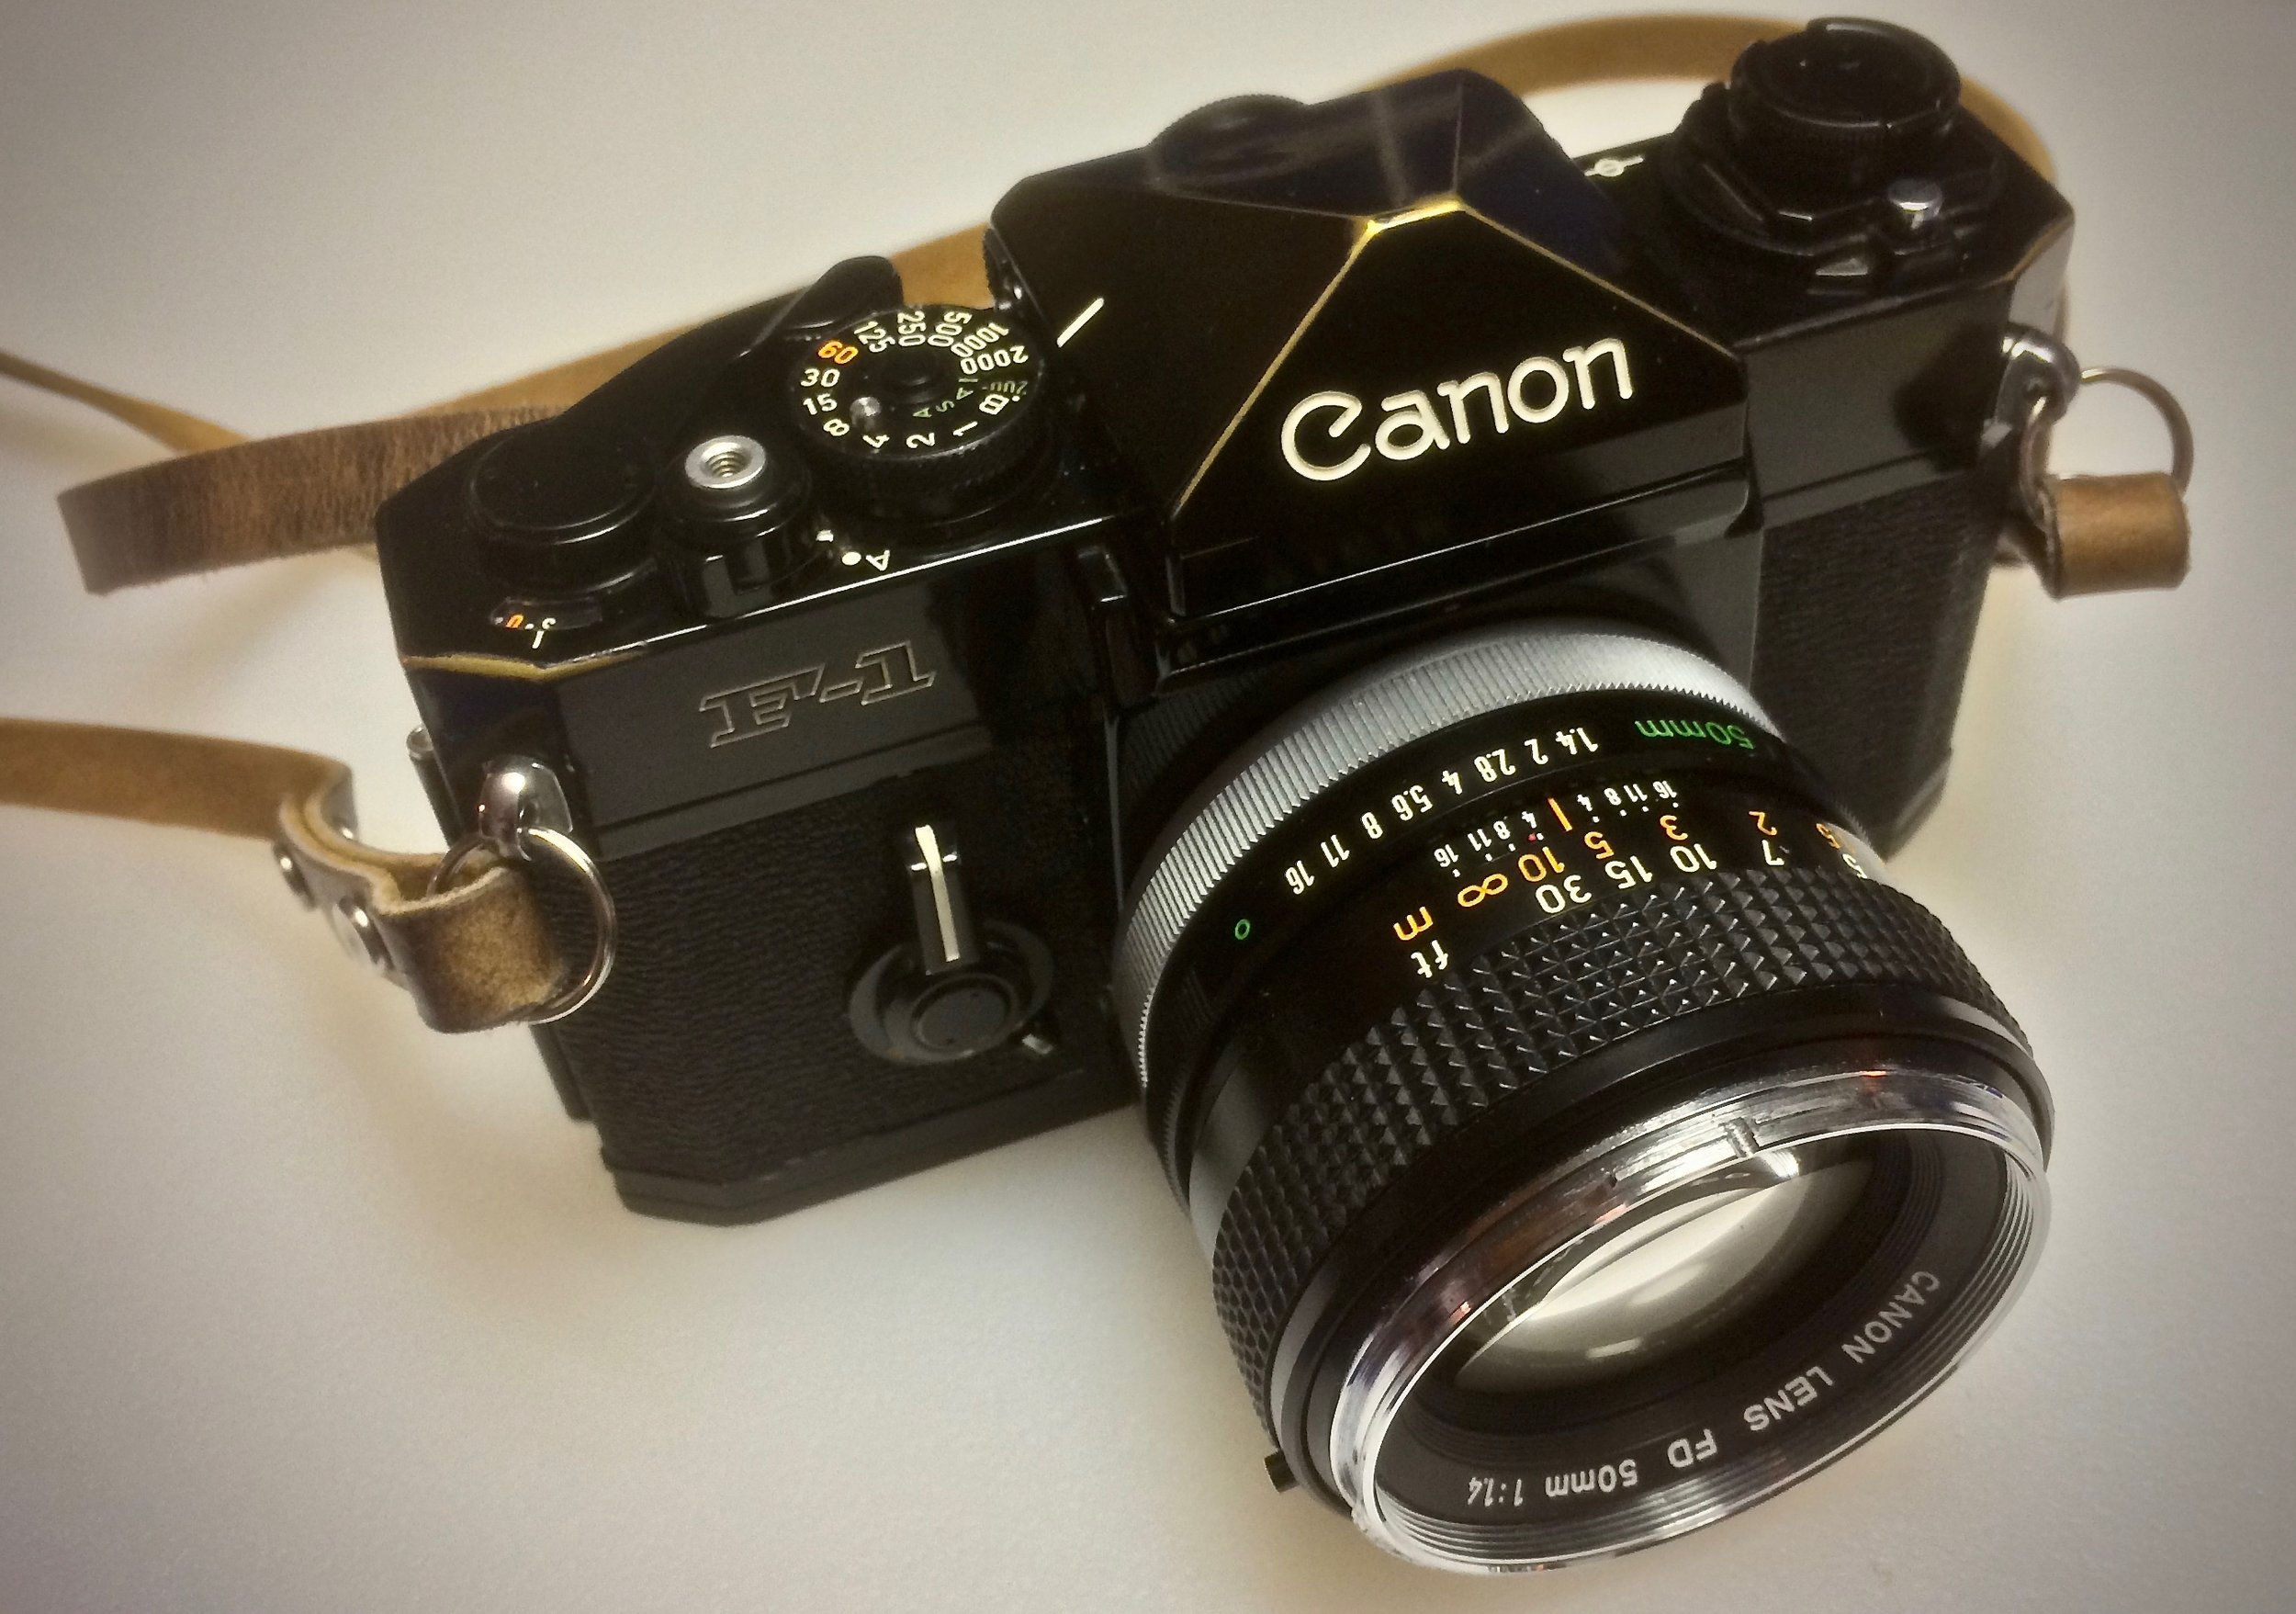 Canon F-1 - Besides having one of the sweetest sounding shutters of any 35mm SLR I've tried, the Canon F-1's analog meter display in the viewfinder is pretty cool. And those FD lenses!!